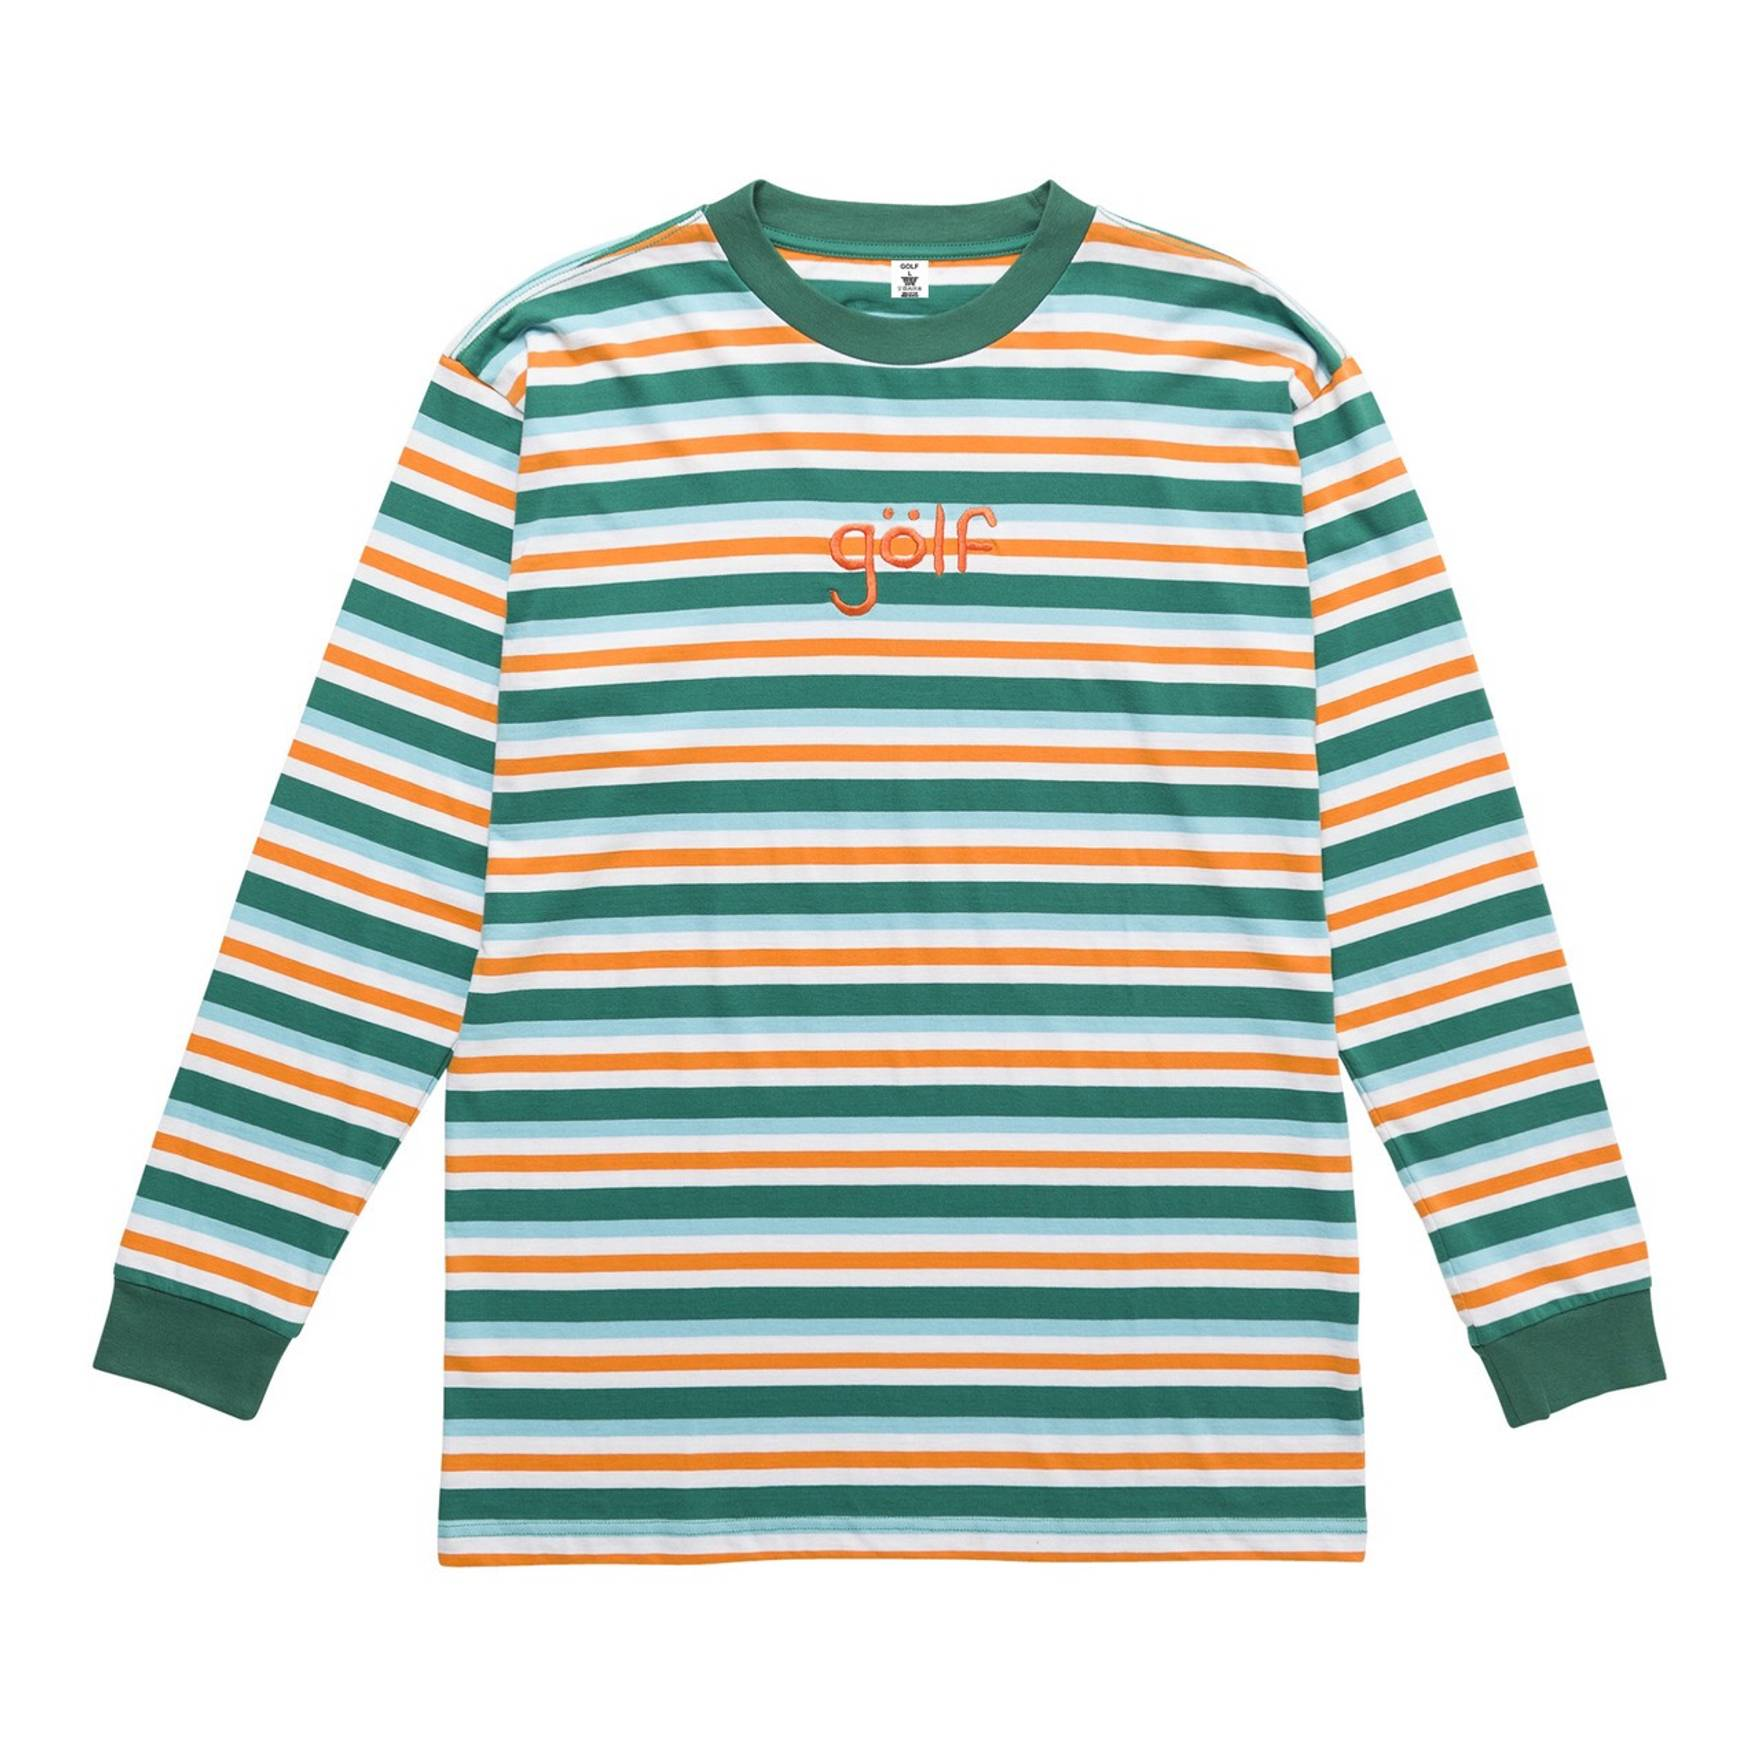 Merch Thread  BUY AND SELL YOUR GOLF LE FLEUR ODD FUTURE MERCH HERE ... e00213ac31bb